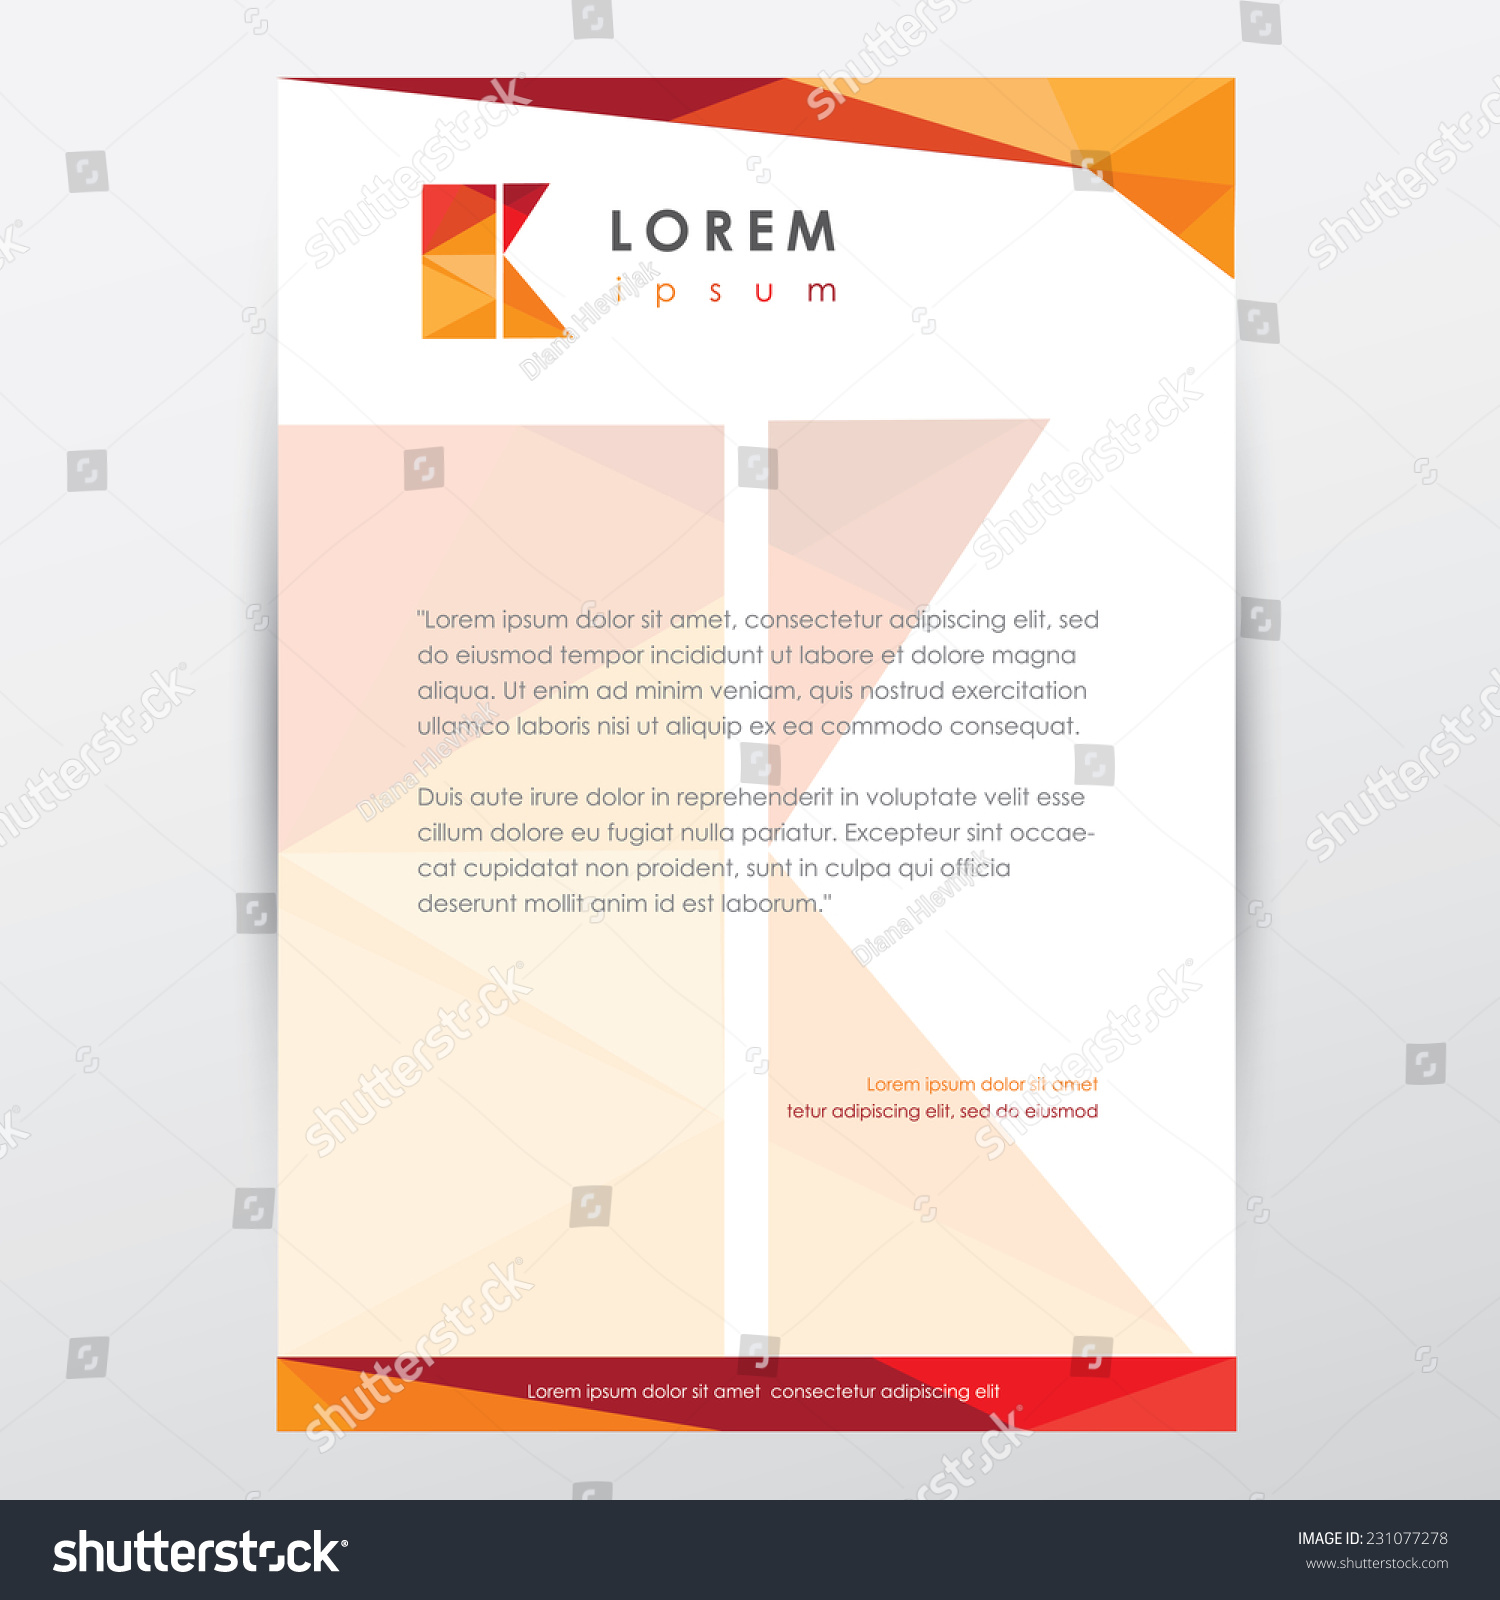 modern colorful low poly style letterhead stock vector 231077278 modern colorful low poly style letterhead memorandum presentation template for company visual identity letter k